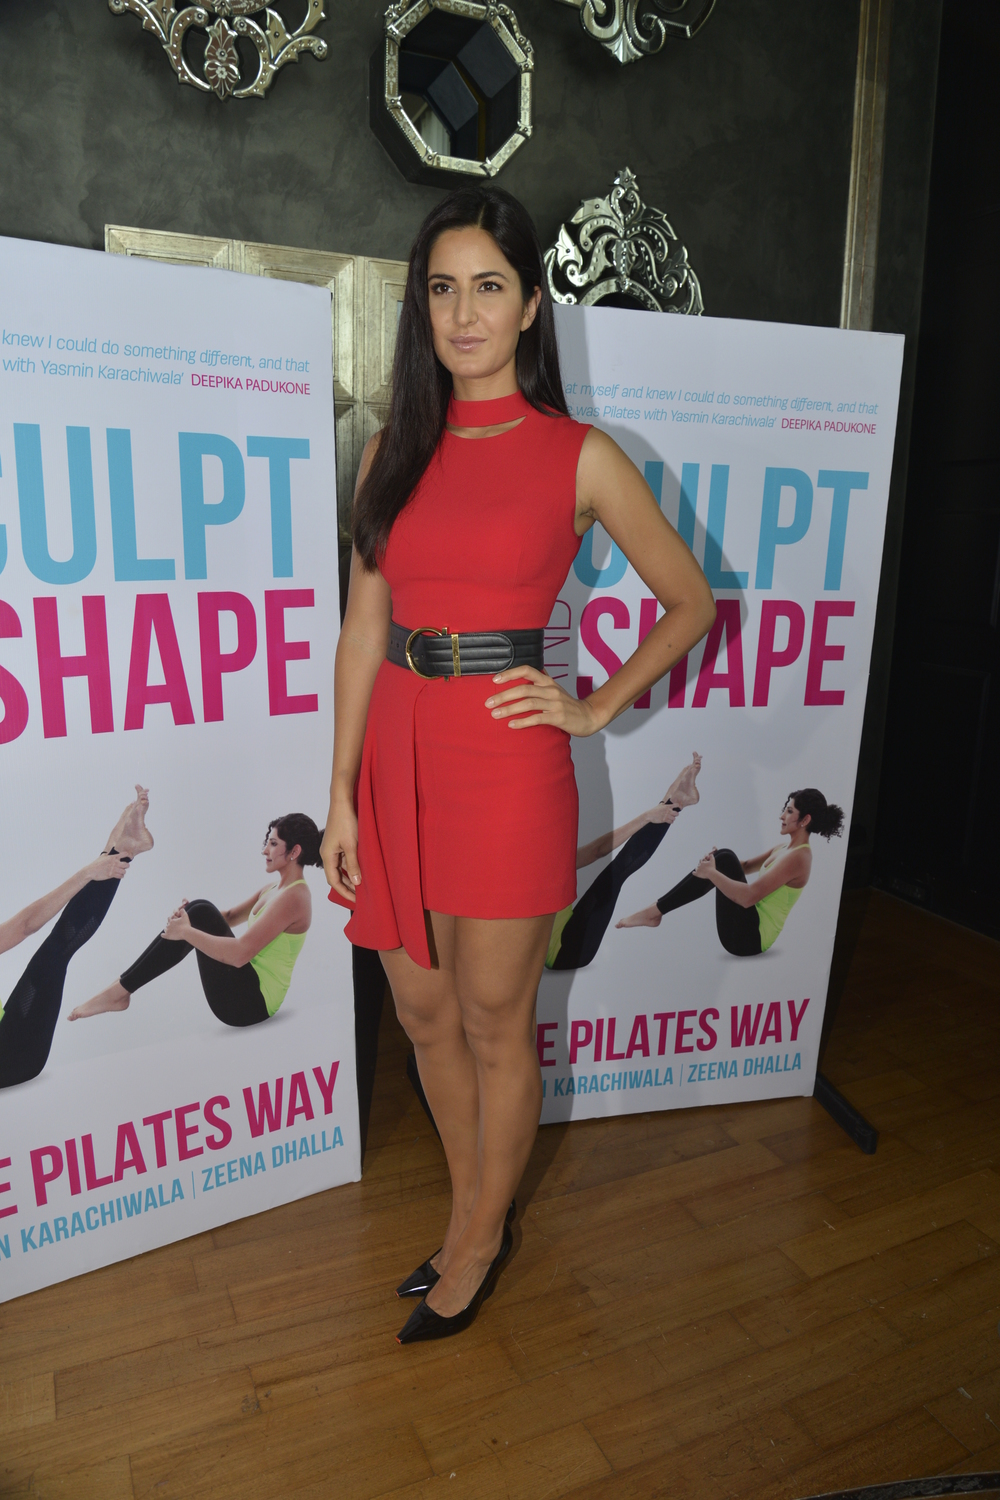 "Katrina Kaif     ""The best thing about Pilates is it is a healthy gentle sustainable approach to fitness based in strengthening and stretching your muscles. Your body feels wonderfully realigned and refreshed. Often high intensity crossfit or functional training (which is very good when you have a specific or quick target to achieve) can be very strenuous on the body.  This is true especially if you have any joint or back issues. Pilates is a very gentle way of still training your muscles without further injuring yourself.     During intense physical preparation for films like dhoom 3, and songs such as Sheila li jawaani, Pilates has always been an integral part of my training."""